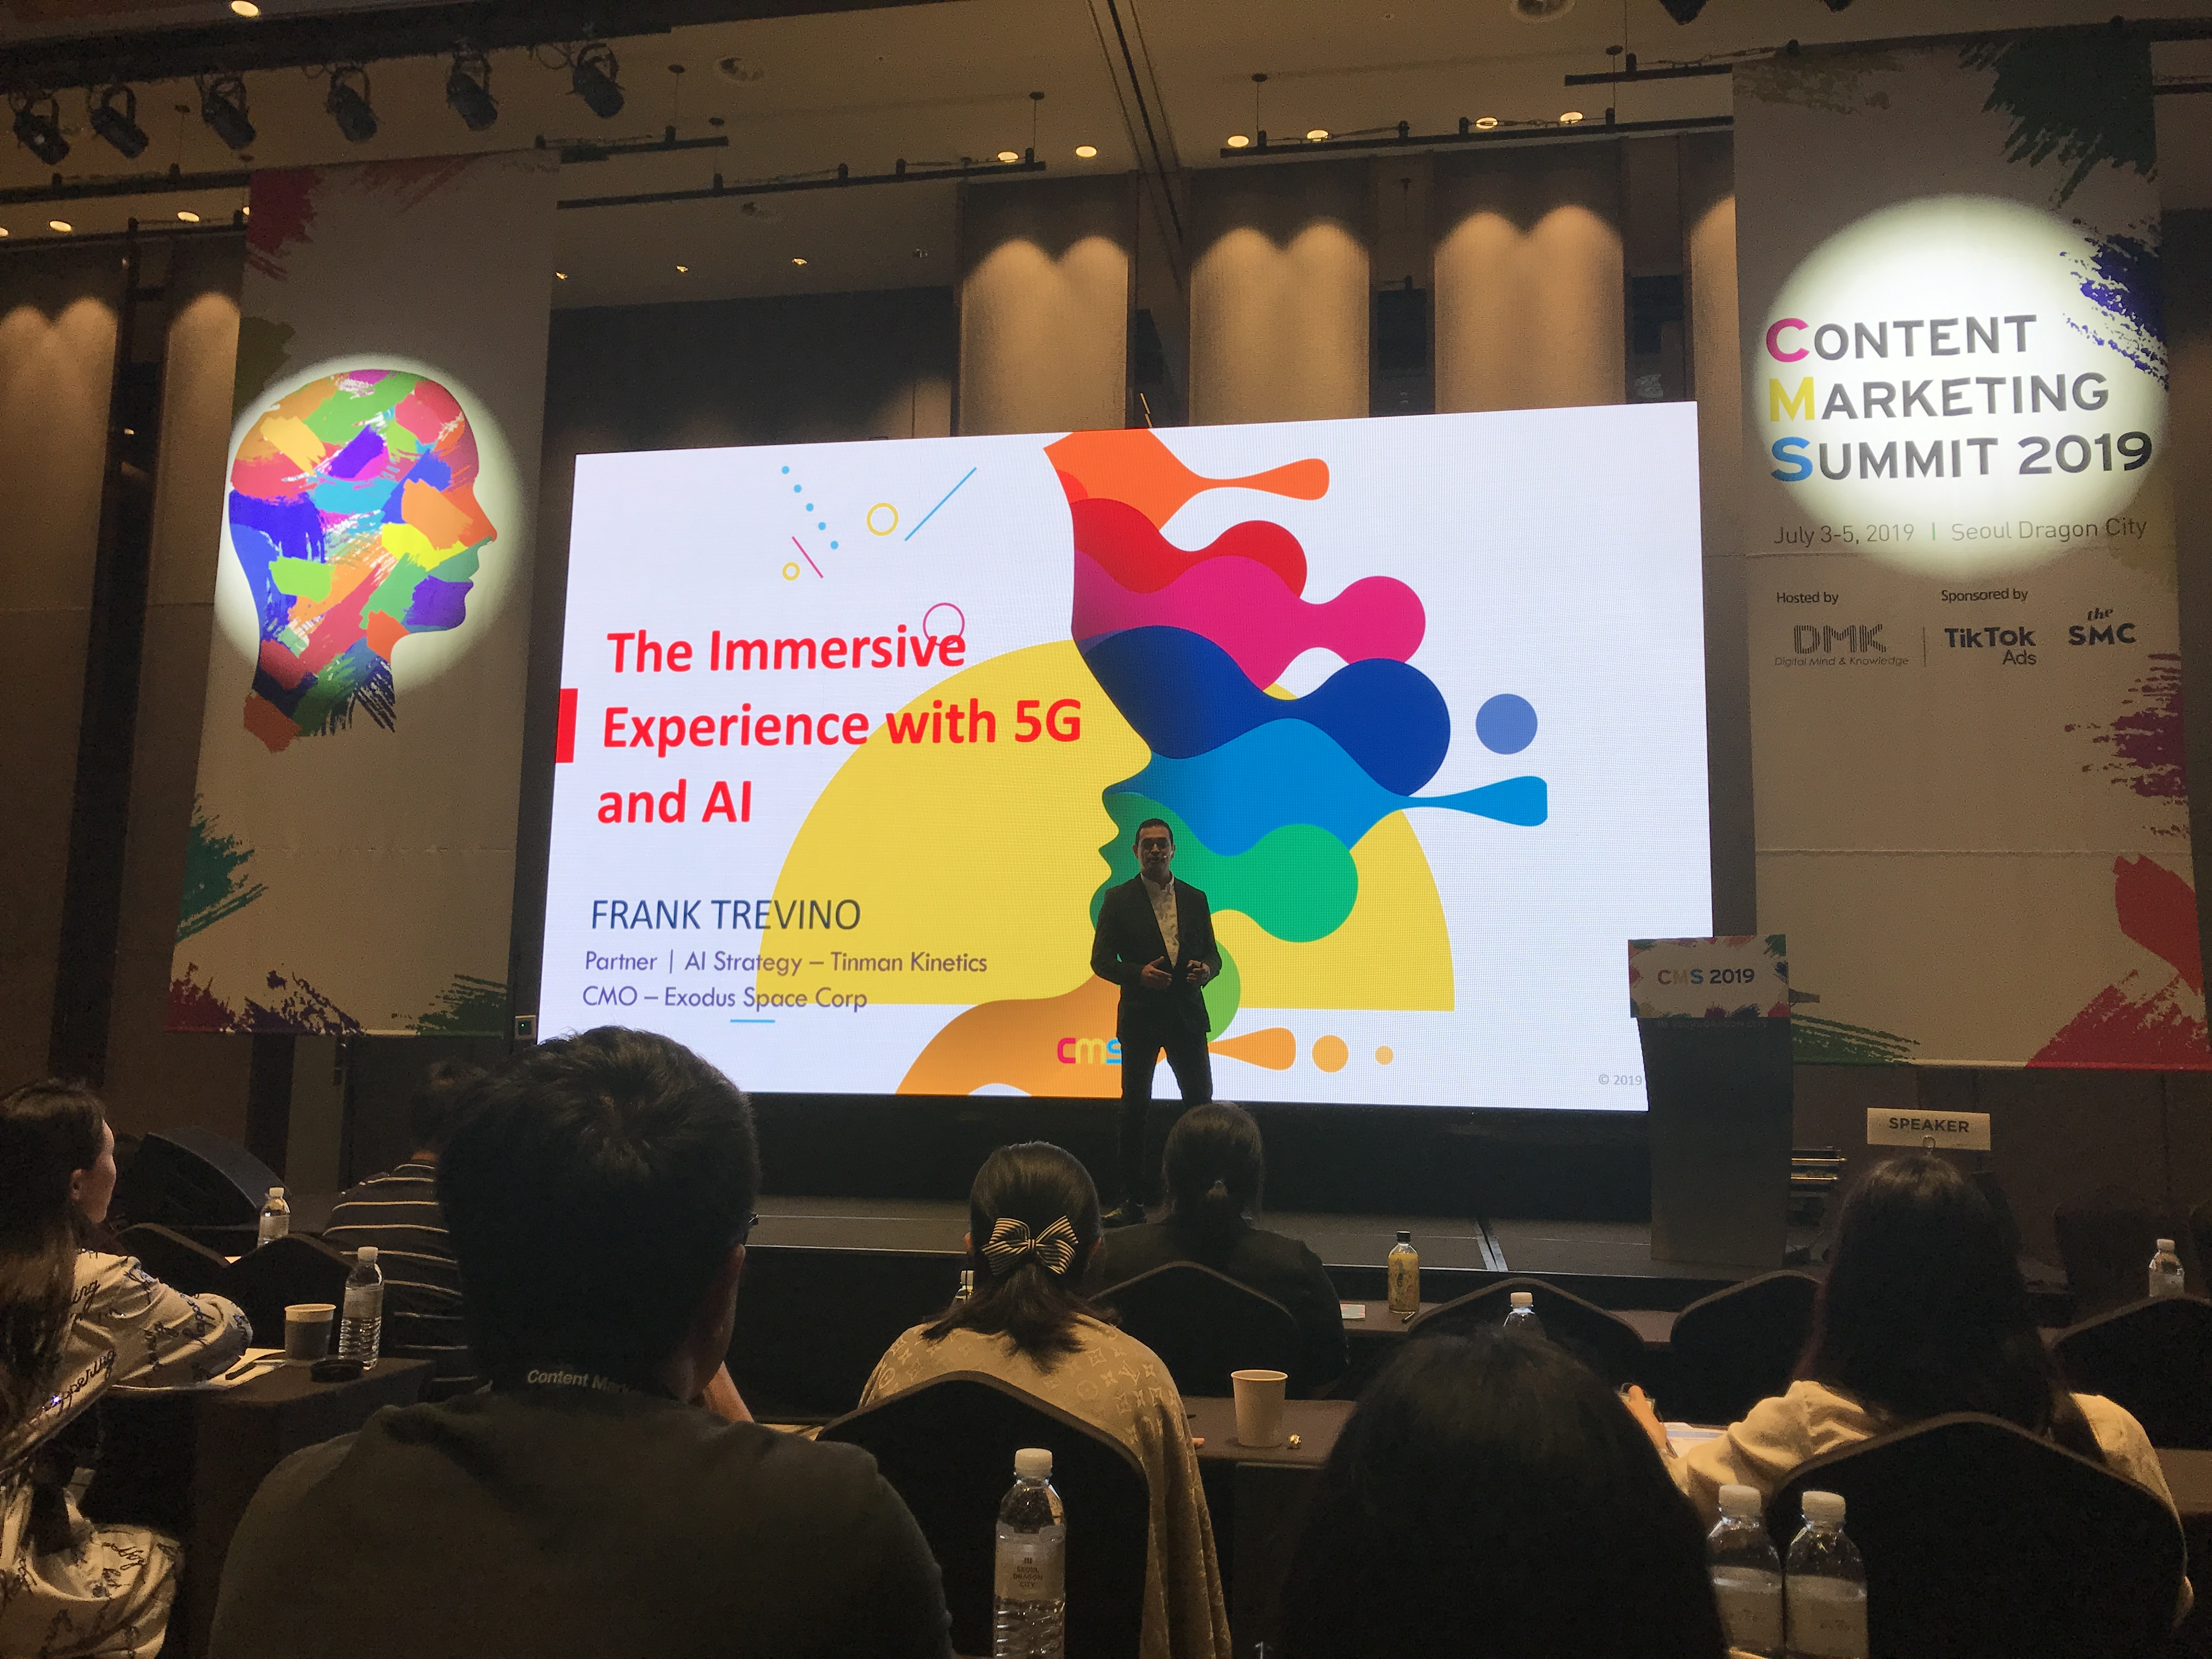 Frank Trevino at Content Marketing Summit 2019